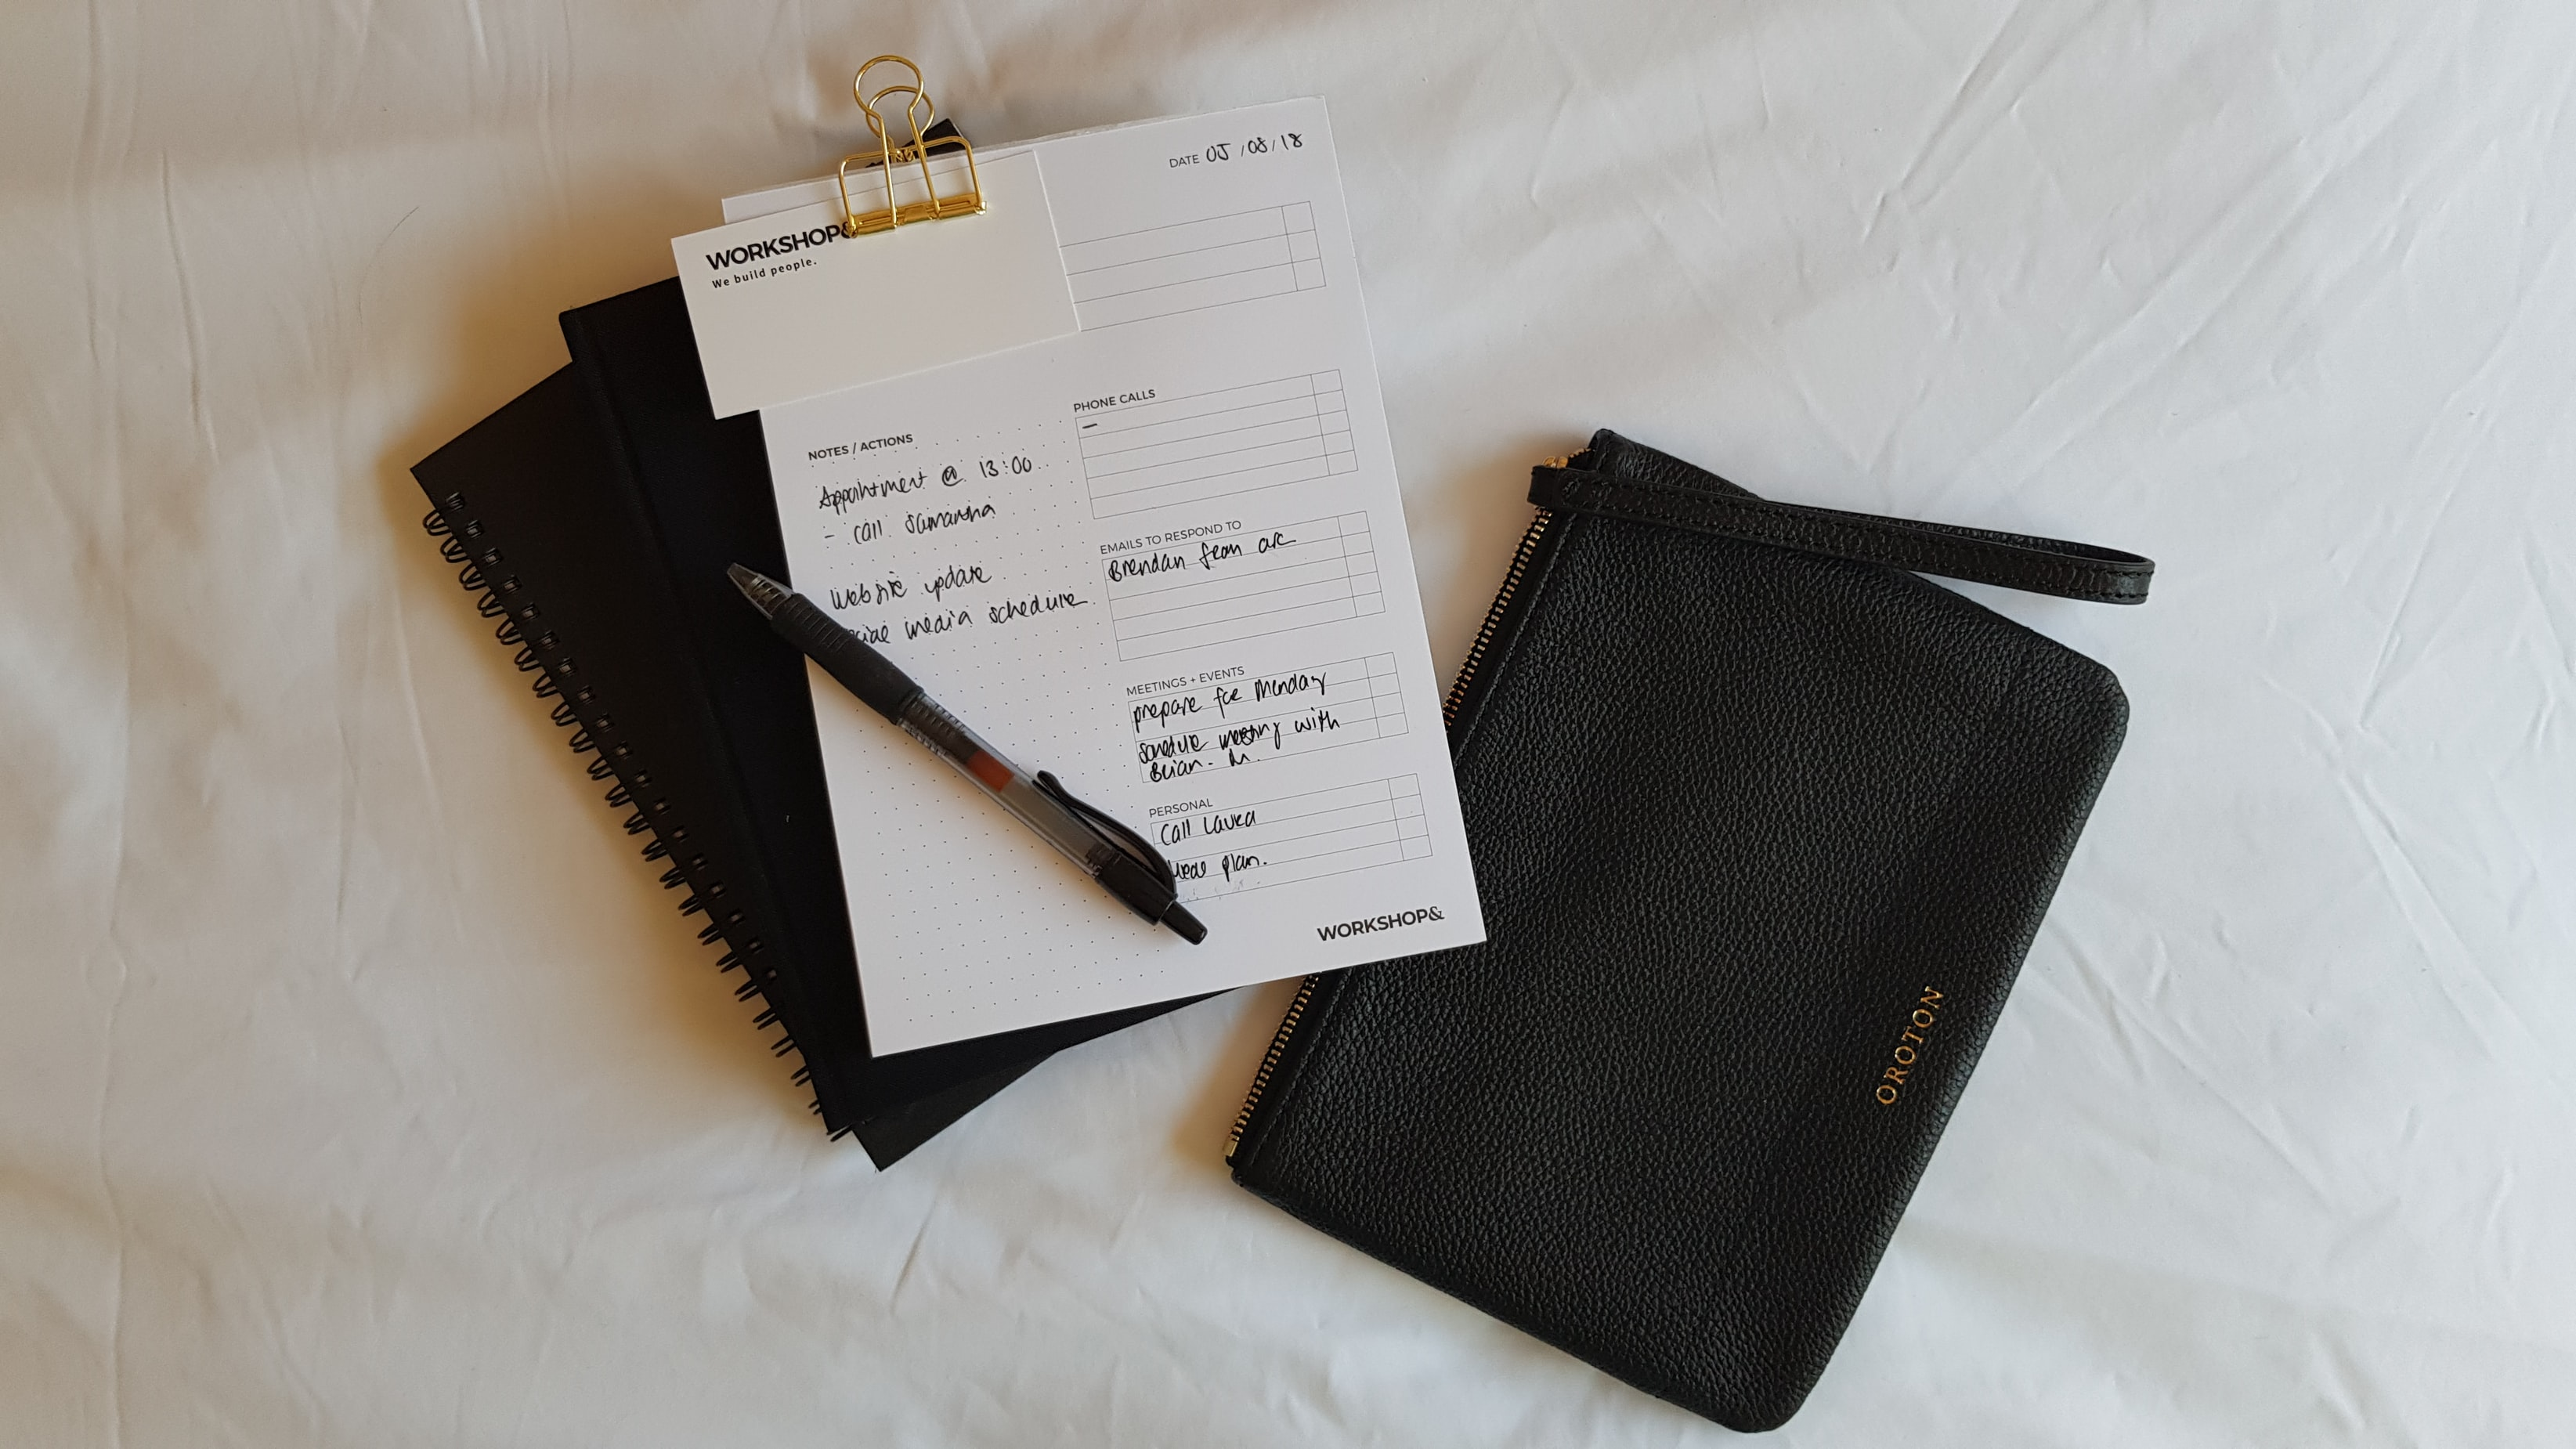 A note book with writing on it, on a white bed, with a small black purse next to it.